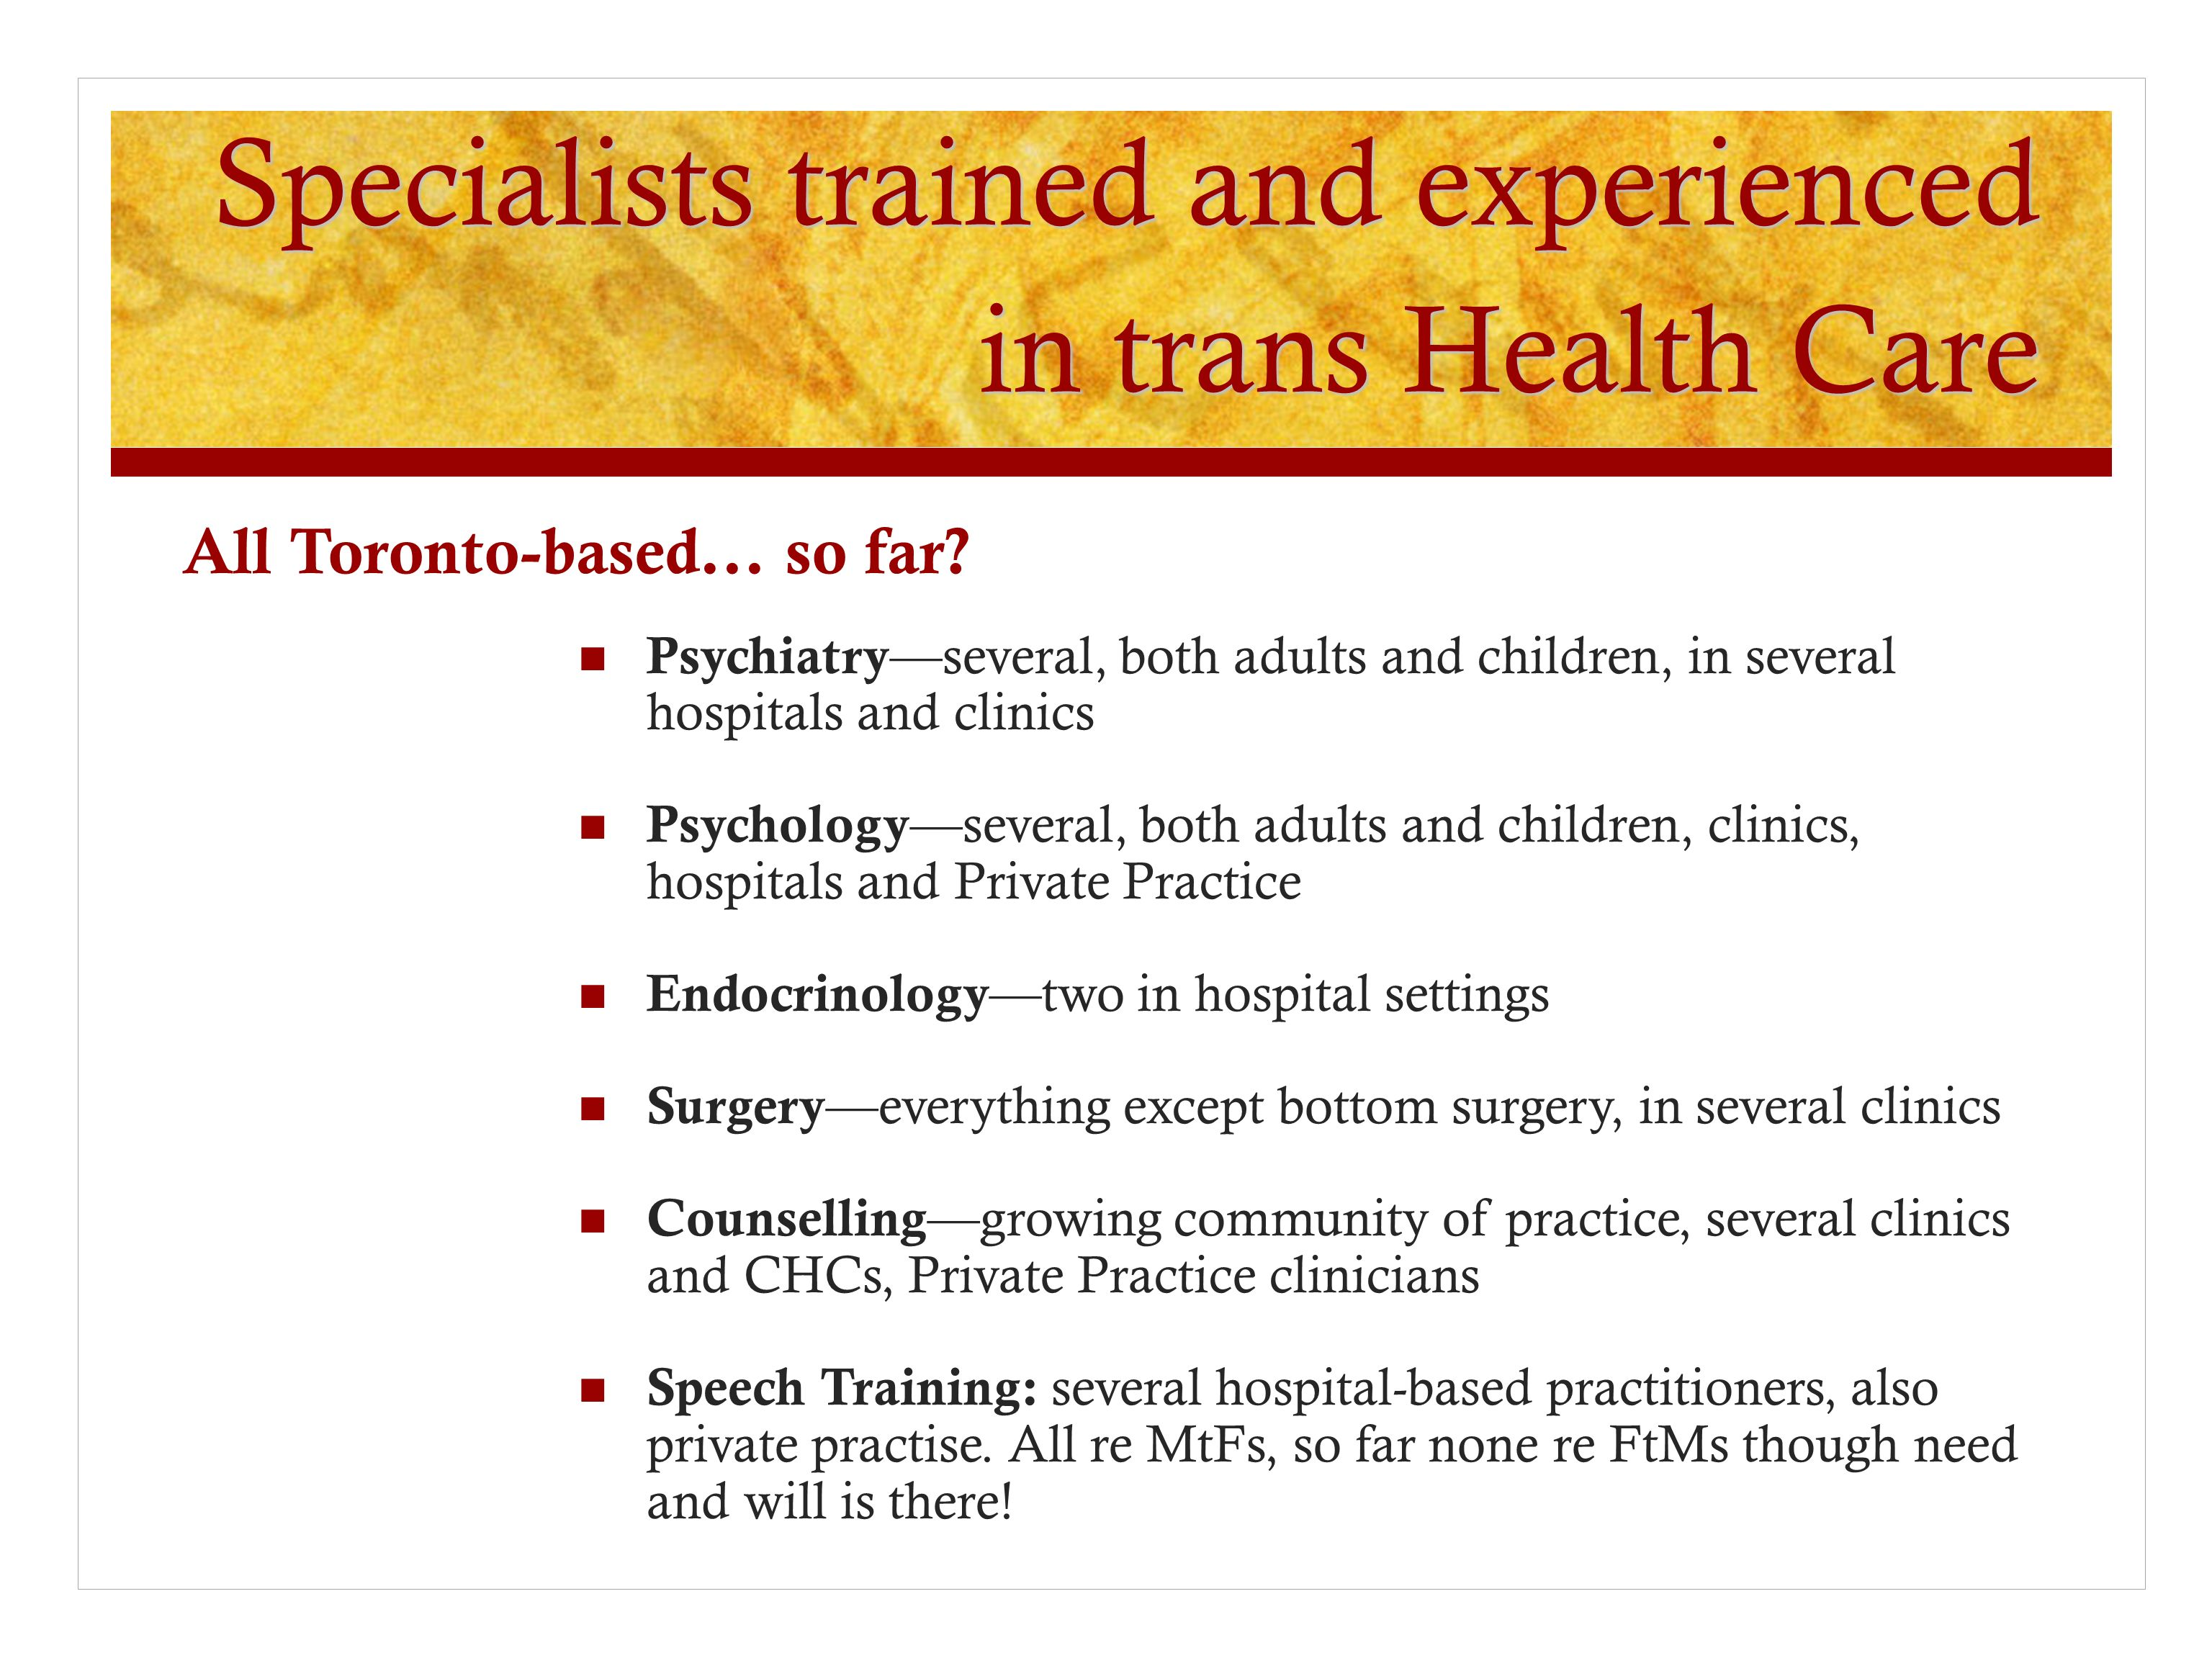 Specialists trained and experienced in trans Health Care